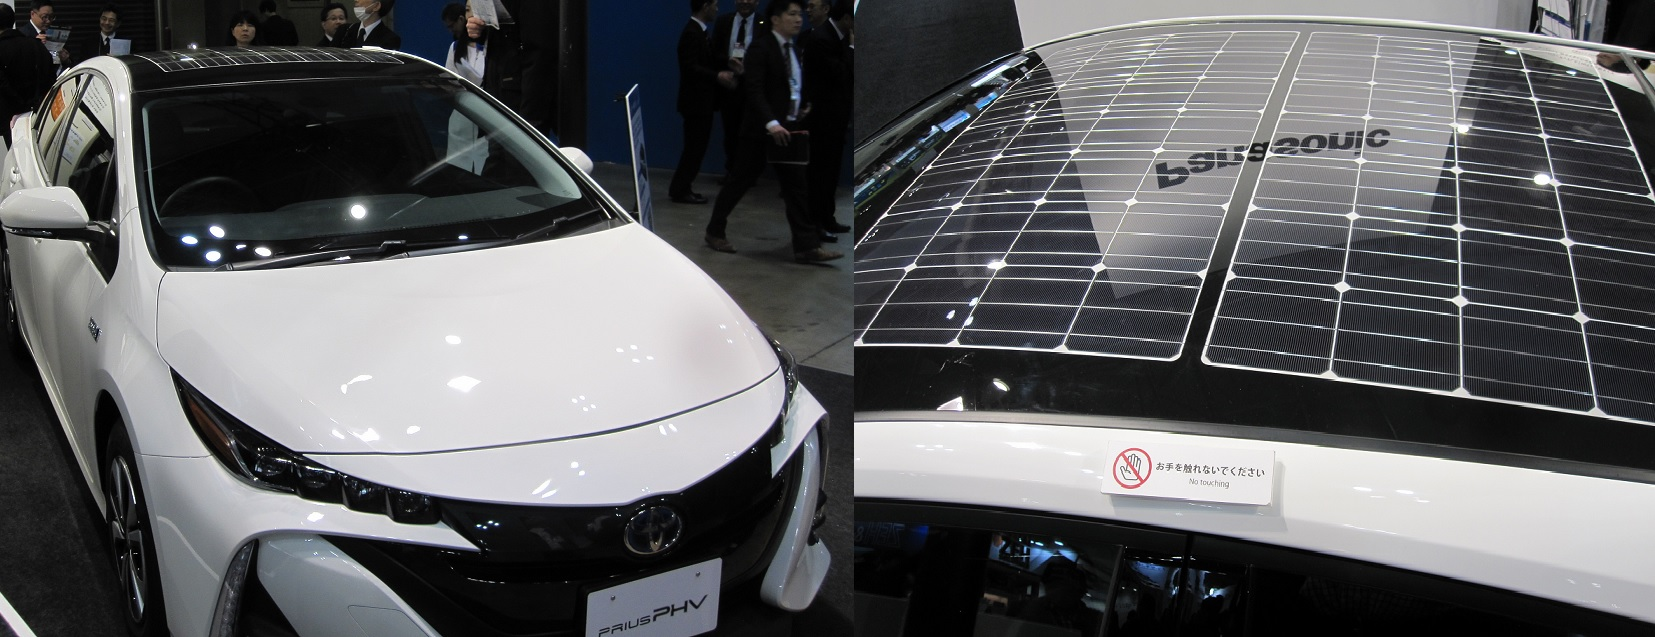 Panasonic's stand featured a Toyota Prius petrol-EV hybrid with 180w of solar on its roof.